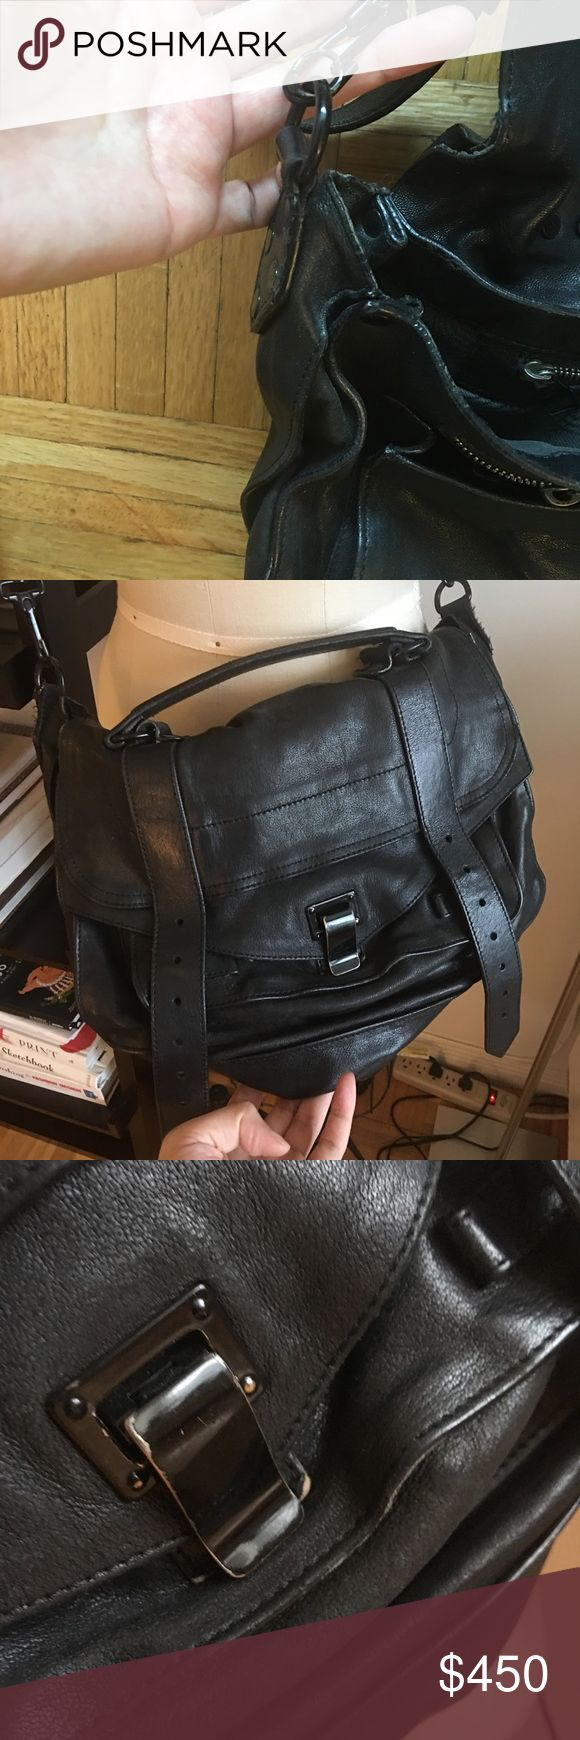 Black proenza schouler PS1 bag This bags been super loved so look through the pics for some wear and tear thus the low price. It's also missing the hanging hardware. This is the first edition where the hardware was black enamel. Dust bag included. Proenza Schouler Bags Shoulder Bags